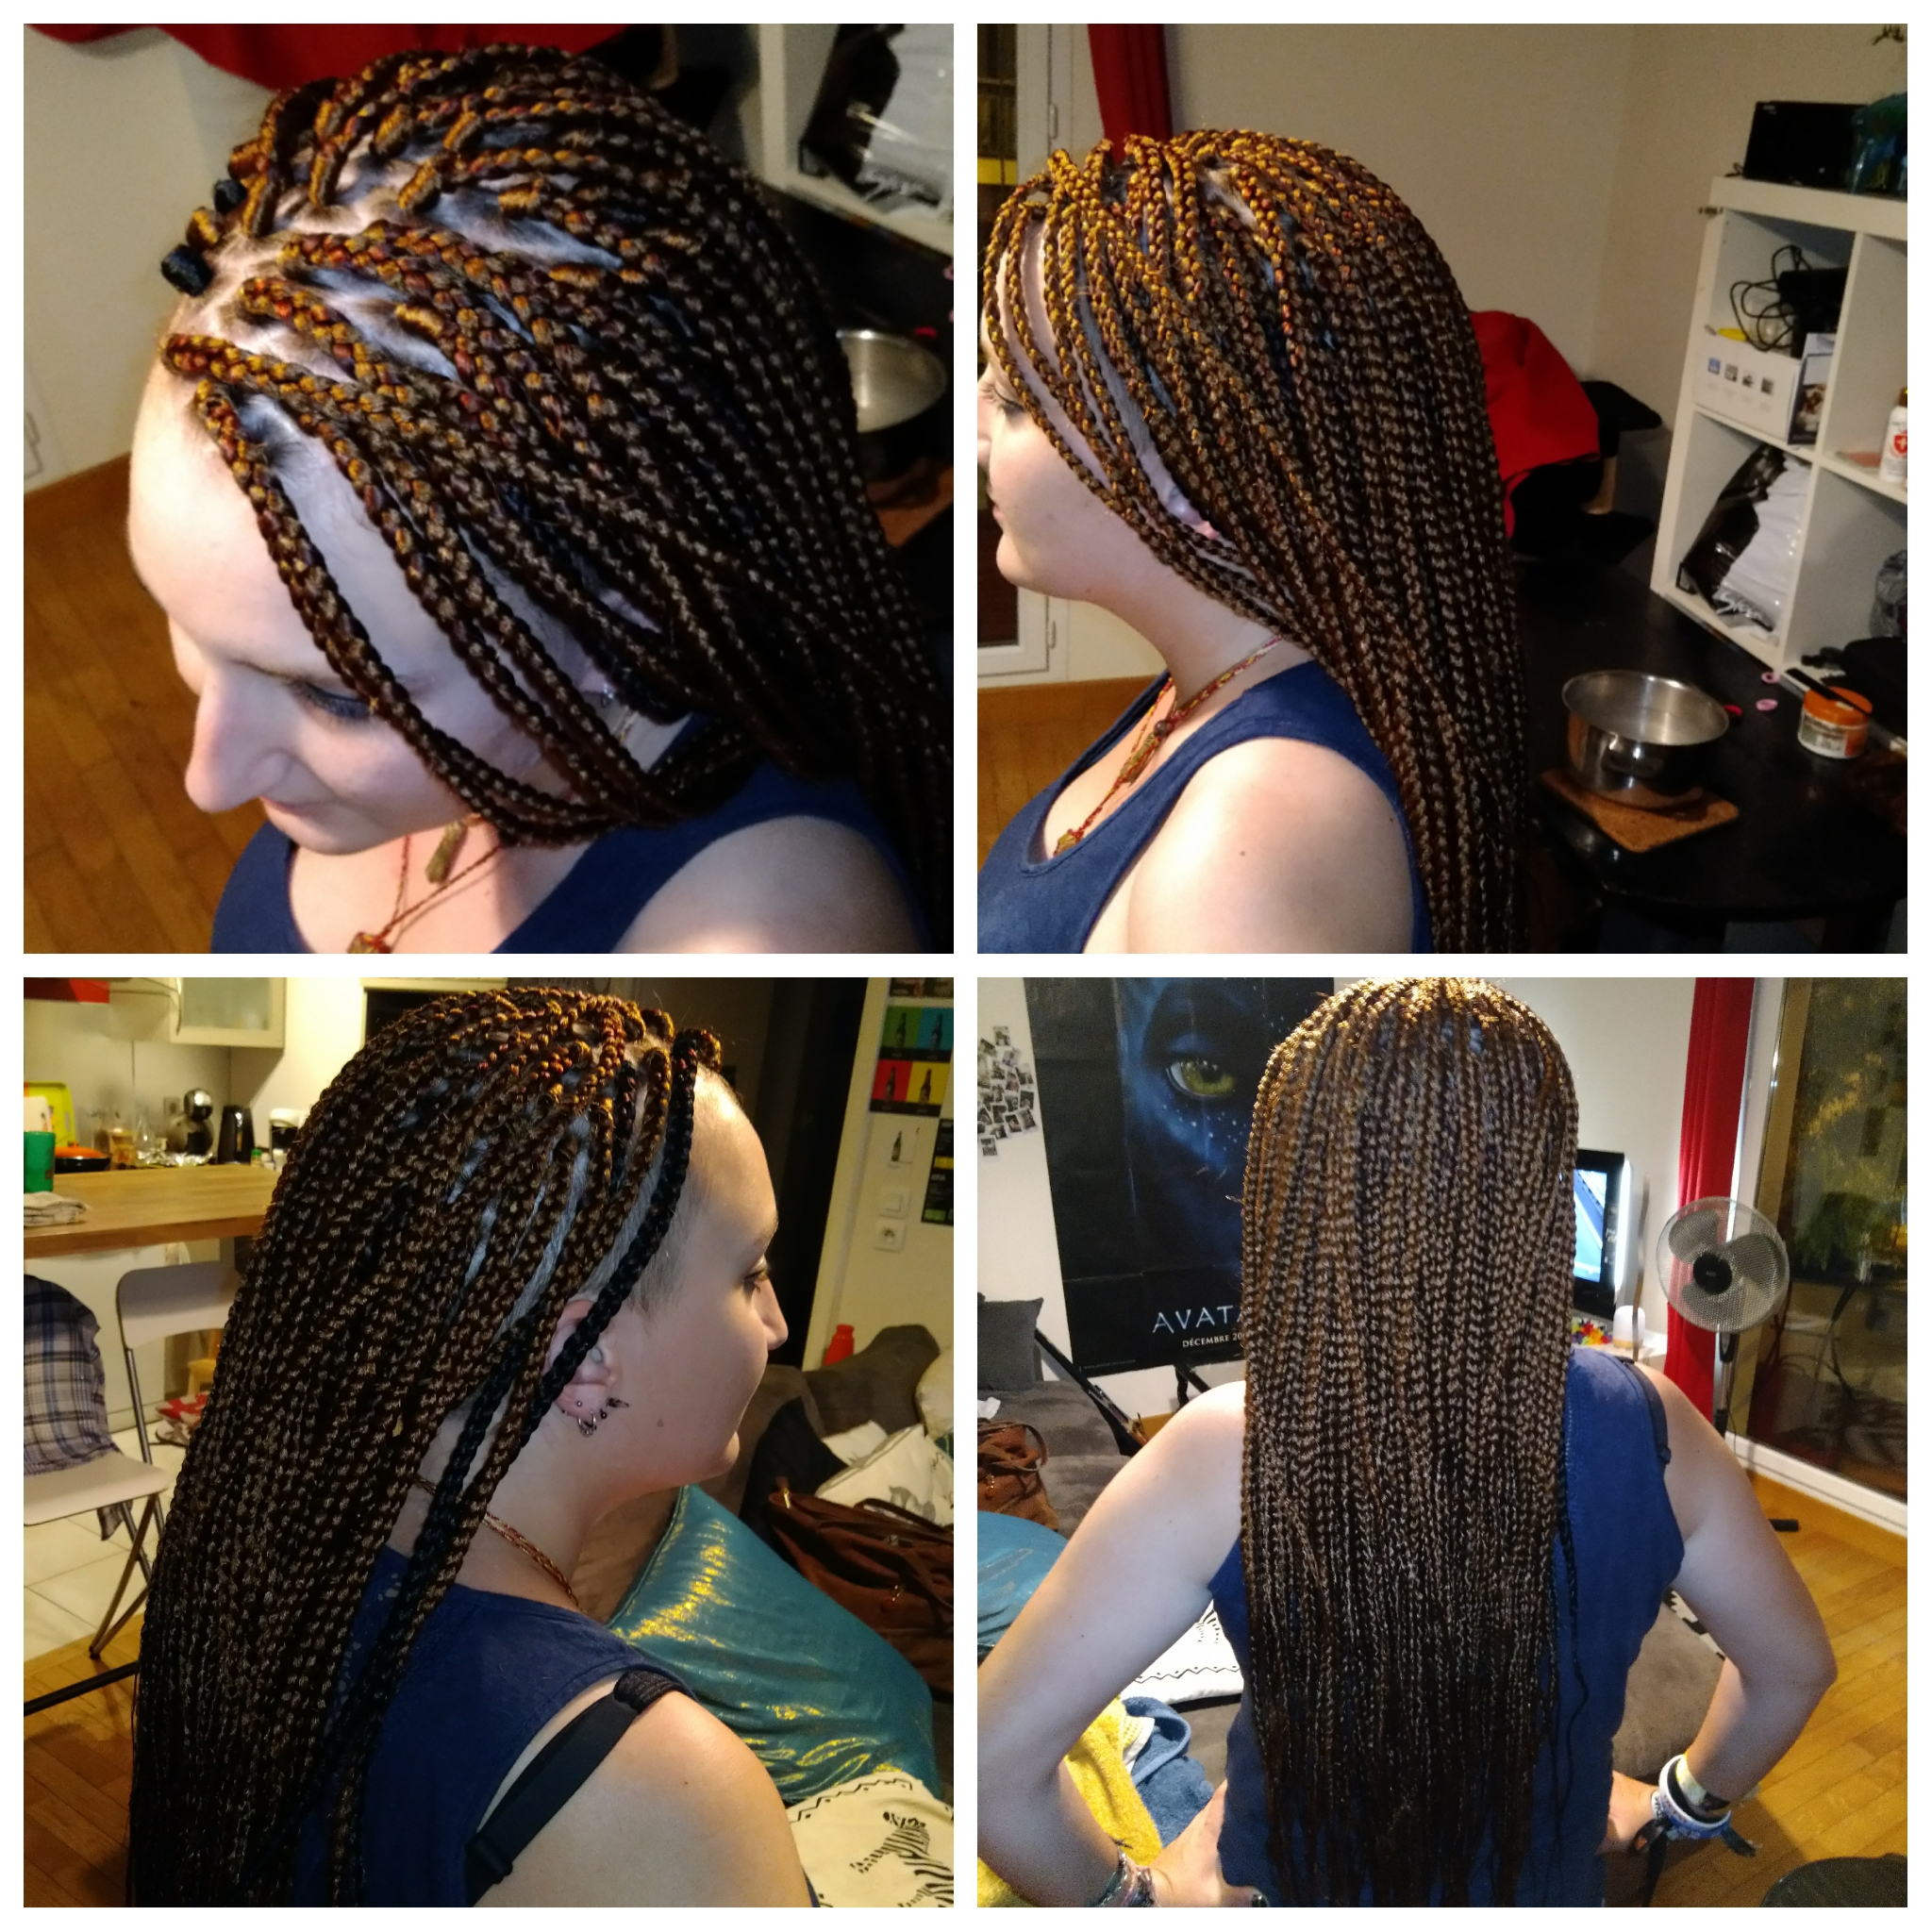 salon de coiffure afro tresse tresses box braids crochet braids vanilles tissages paris 75 77 78 91 92 93 94 95 VDQLCLNV